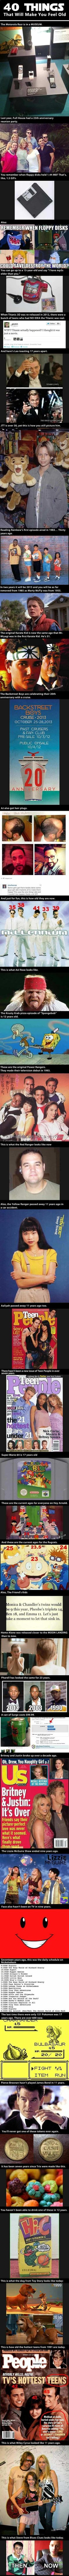 40 things that will make you feel old - HOLY SHIT - friends kids ages! :/